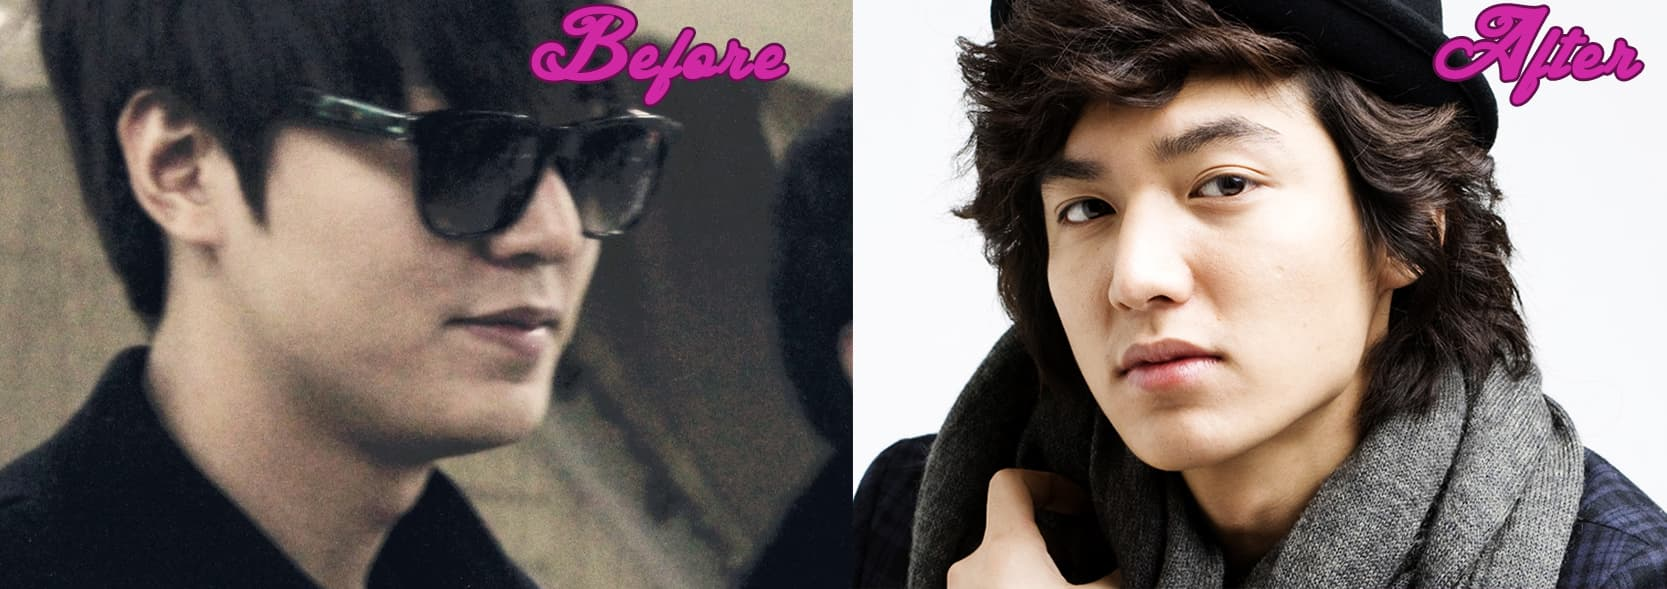 No Min Woo Plastic Surgery Before And After 1